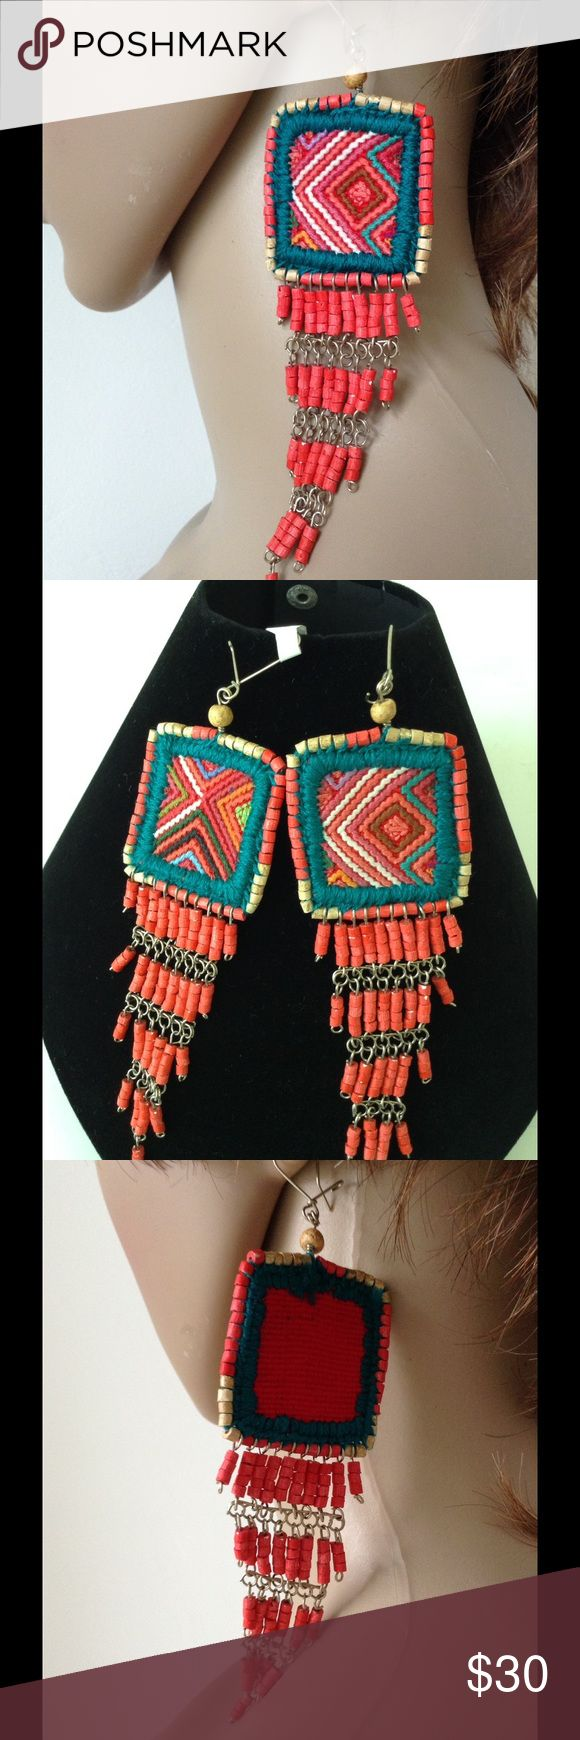 "Guatemala's Vintage tapestry Drop dangle earrings Statement earrings are the new necklace! Guatemalan's Ceremonials vintage inspiration, hand made earrings, crafted details: Cotton-yield thread multicolor tapestry, dangle fringe ceramic- clay beads, 6"" long, fish hook, nickel free. Color: multi-Coral- Teal tapestry & Coral dangle beads. unknown Jewelry Earrings"